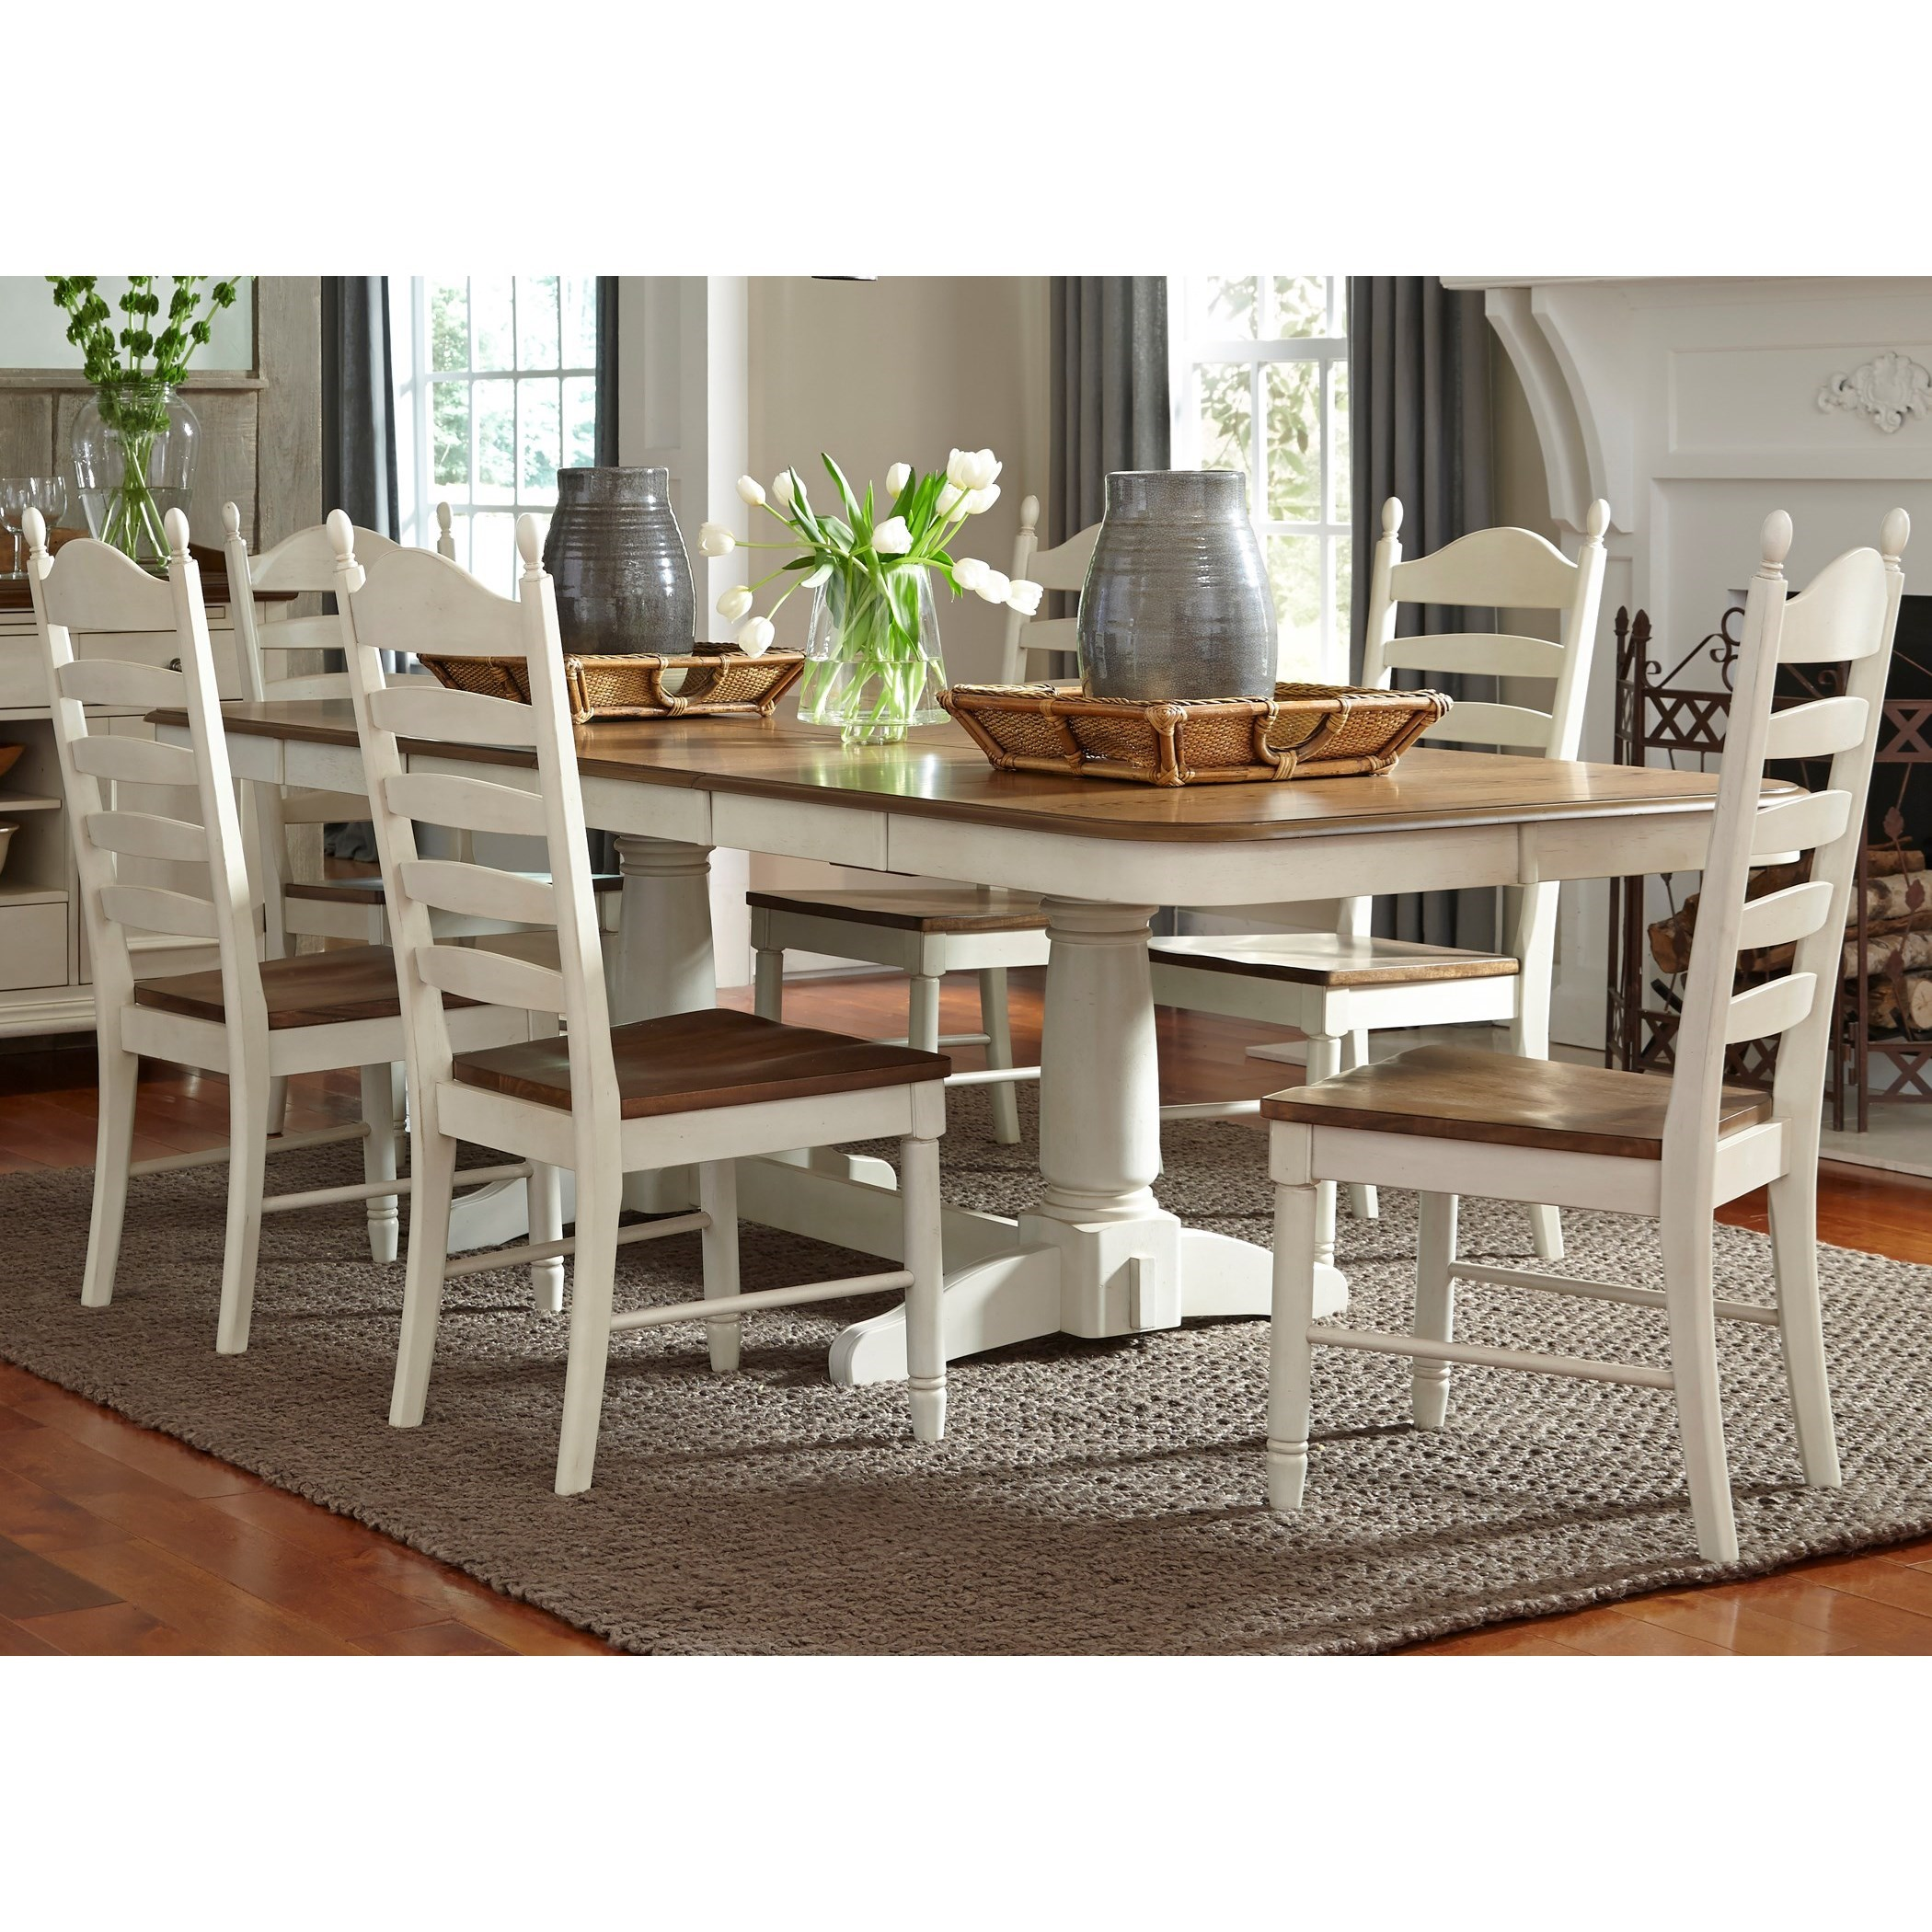 Springfield Dining 7 Piece Double Pedestal Table & Chair Set by Liberty Furniture at Northeast Factory Direct